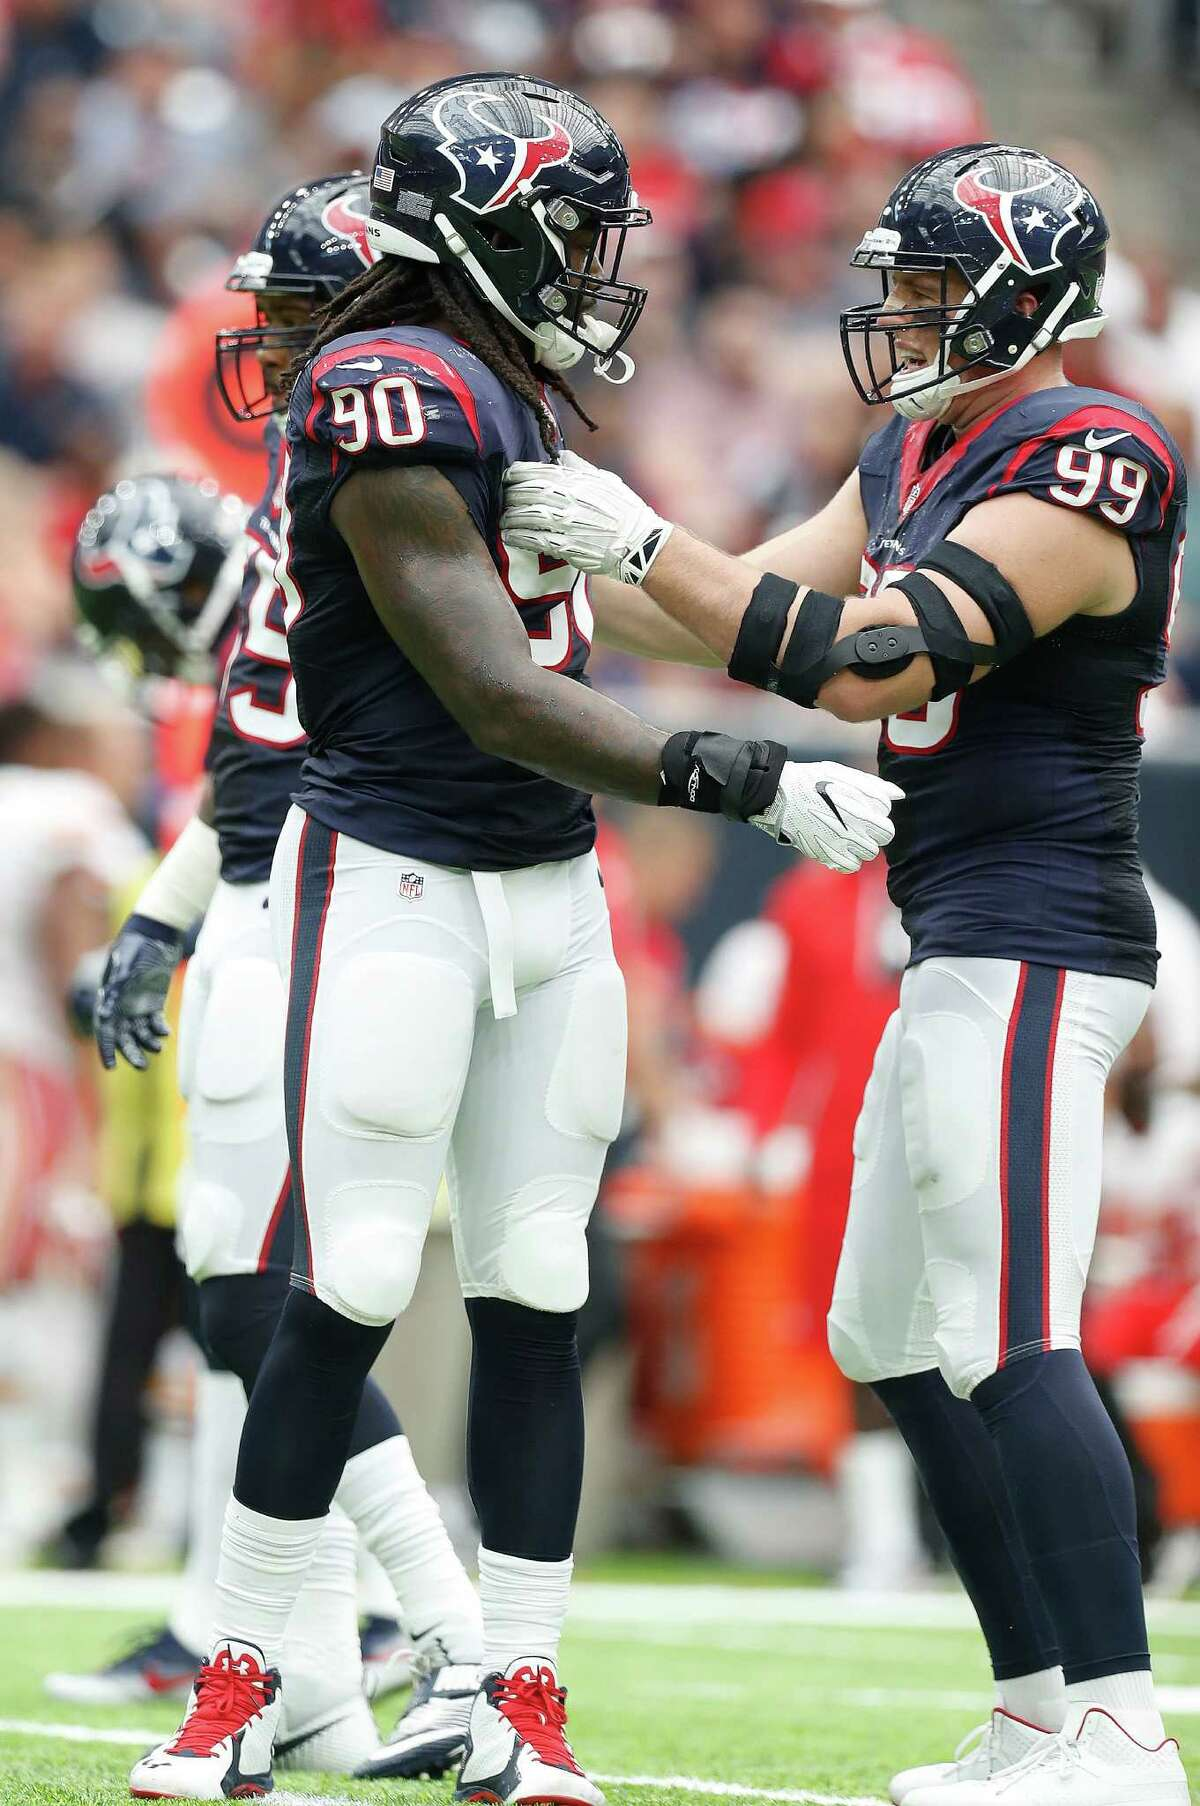 Texans defensive end Jadeveon Clowney said he is looking forward to playing with a healthy J.J. Watt for the first time in his career.